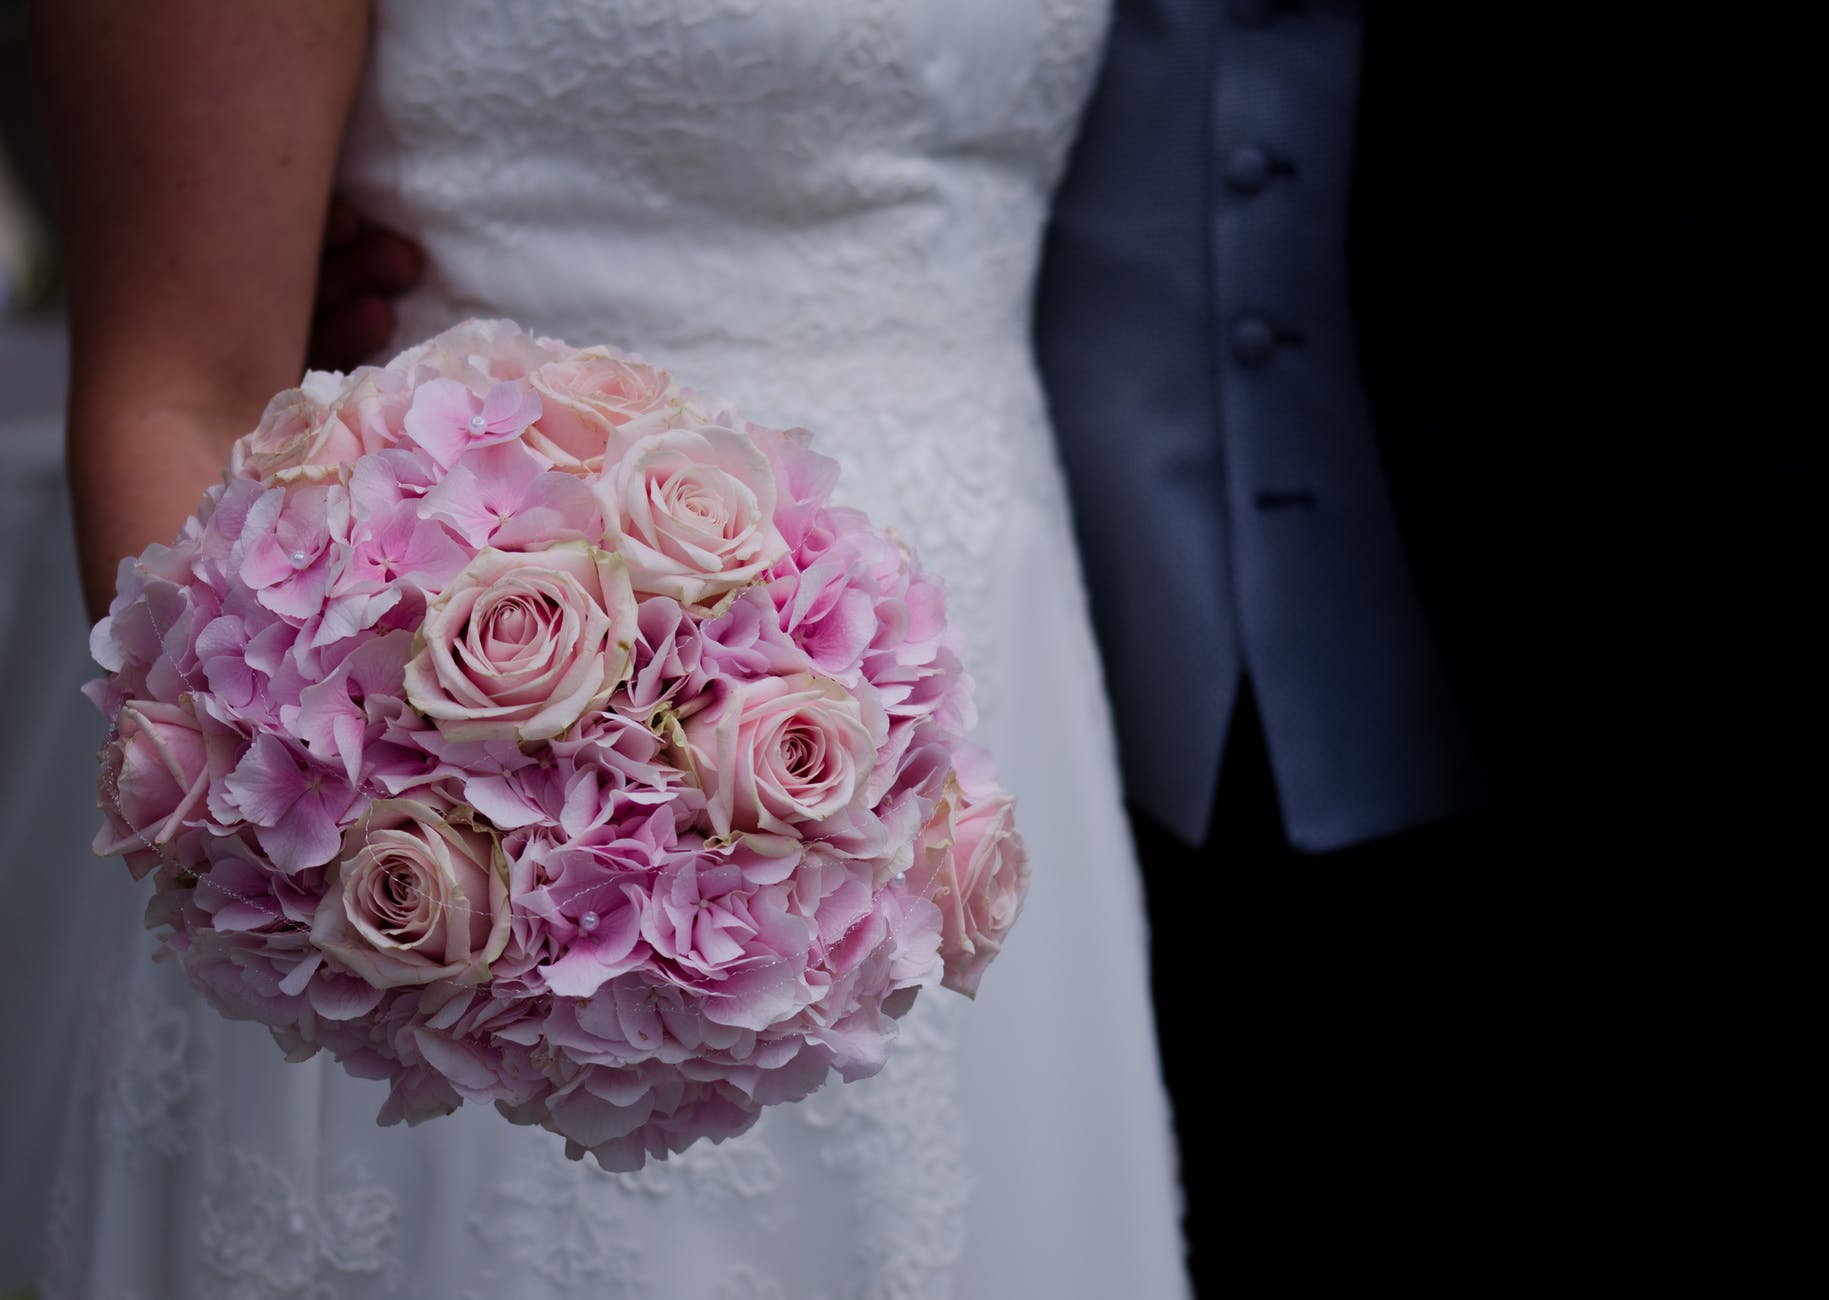 Bride holding round bouquet with roses